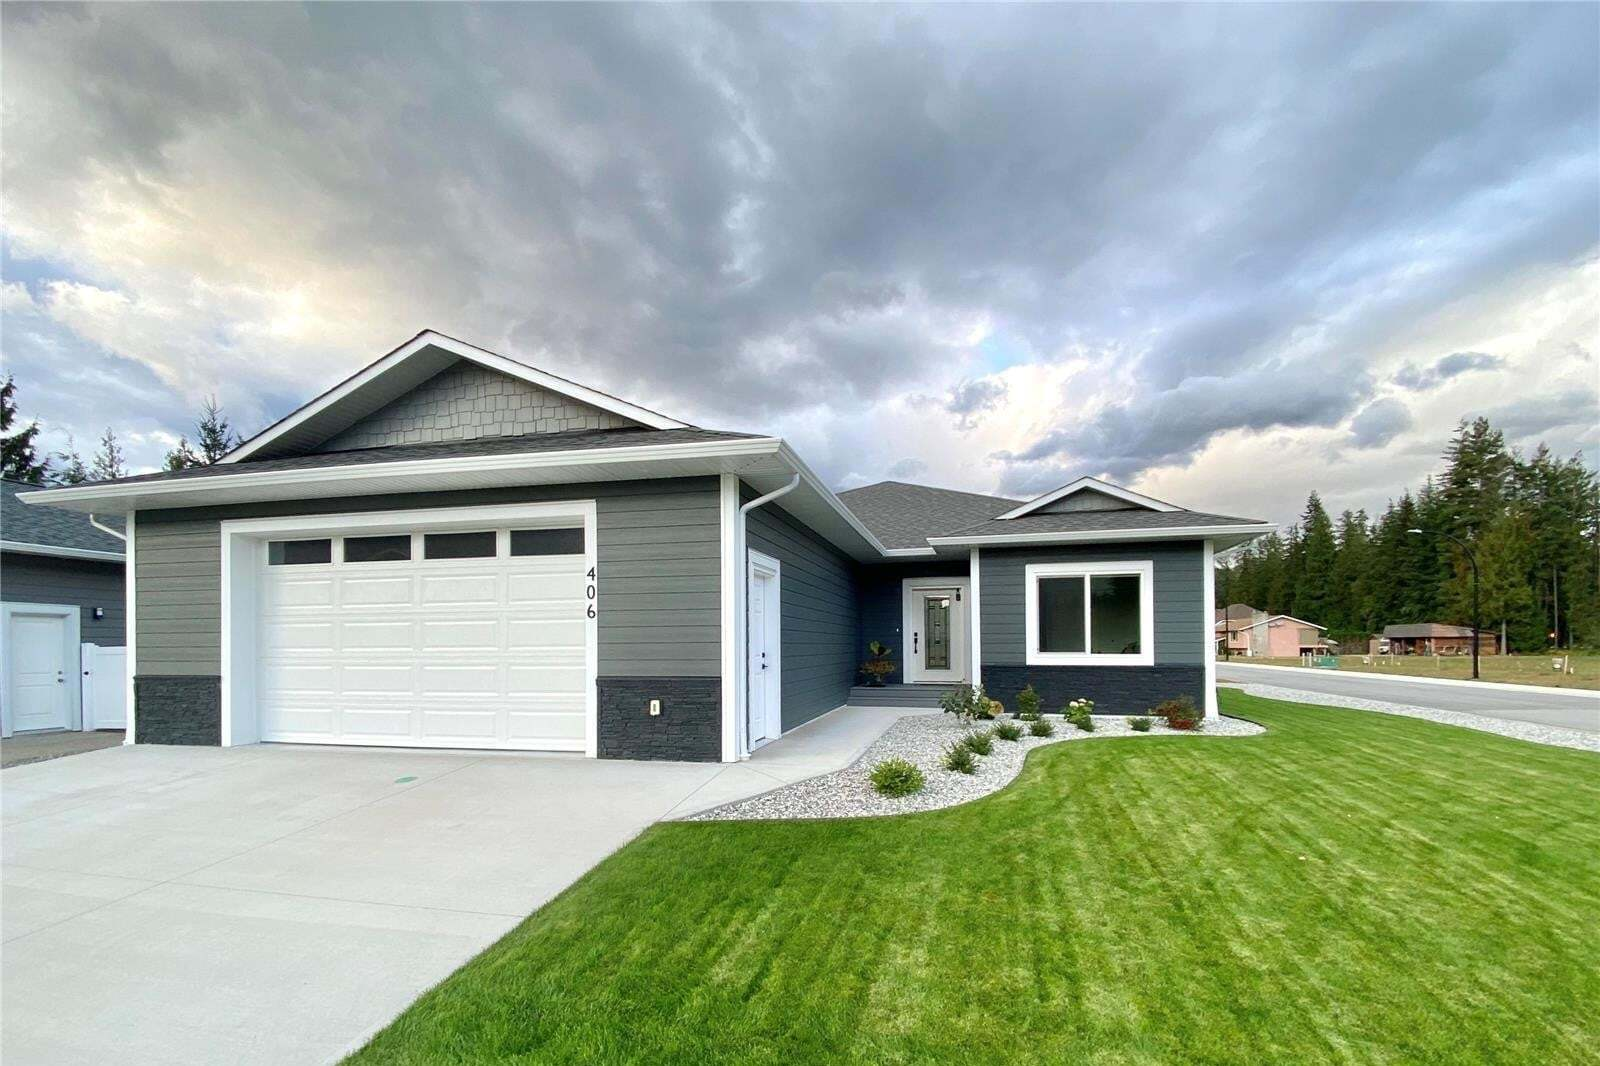 House for sale at 406 Martin St Sicamous British Columbia - MLS: 10202355